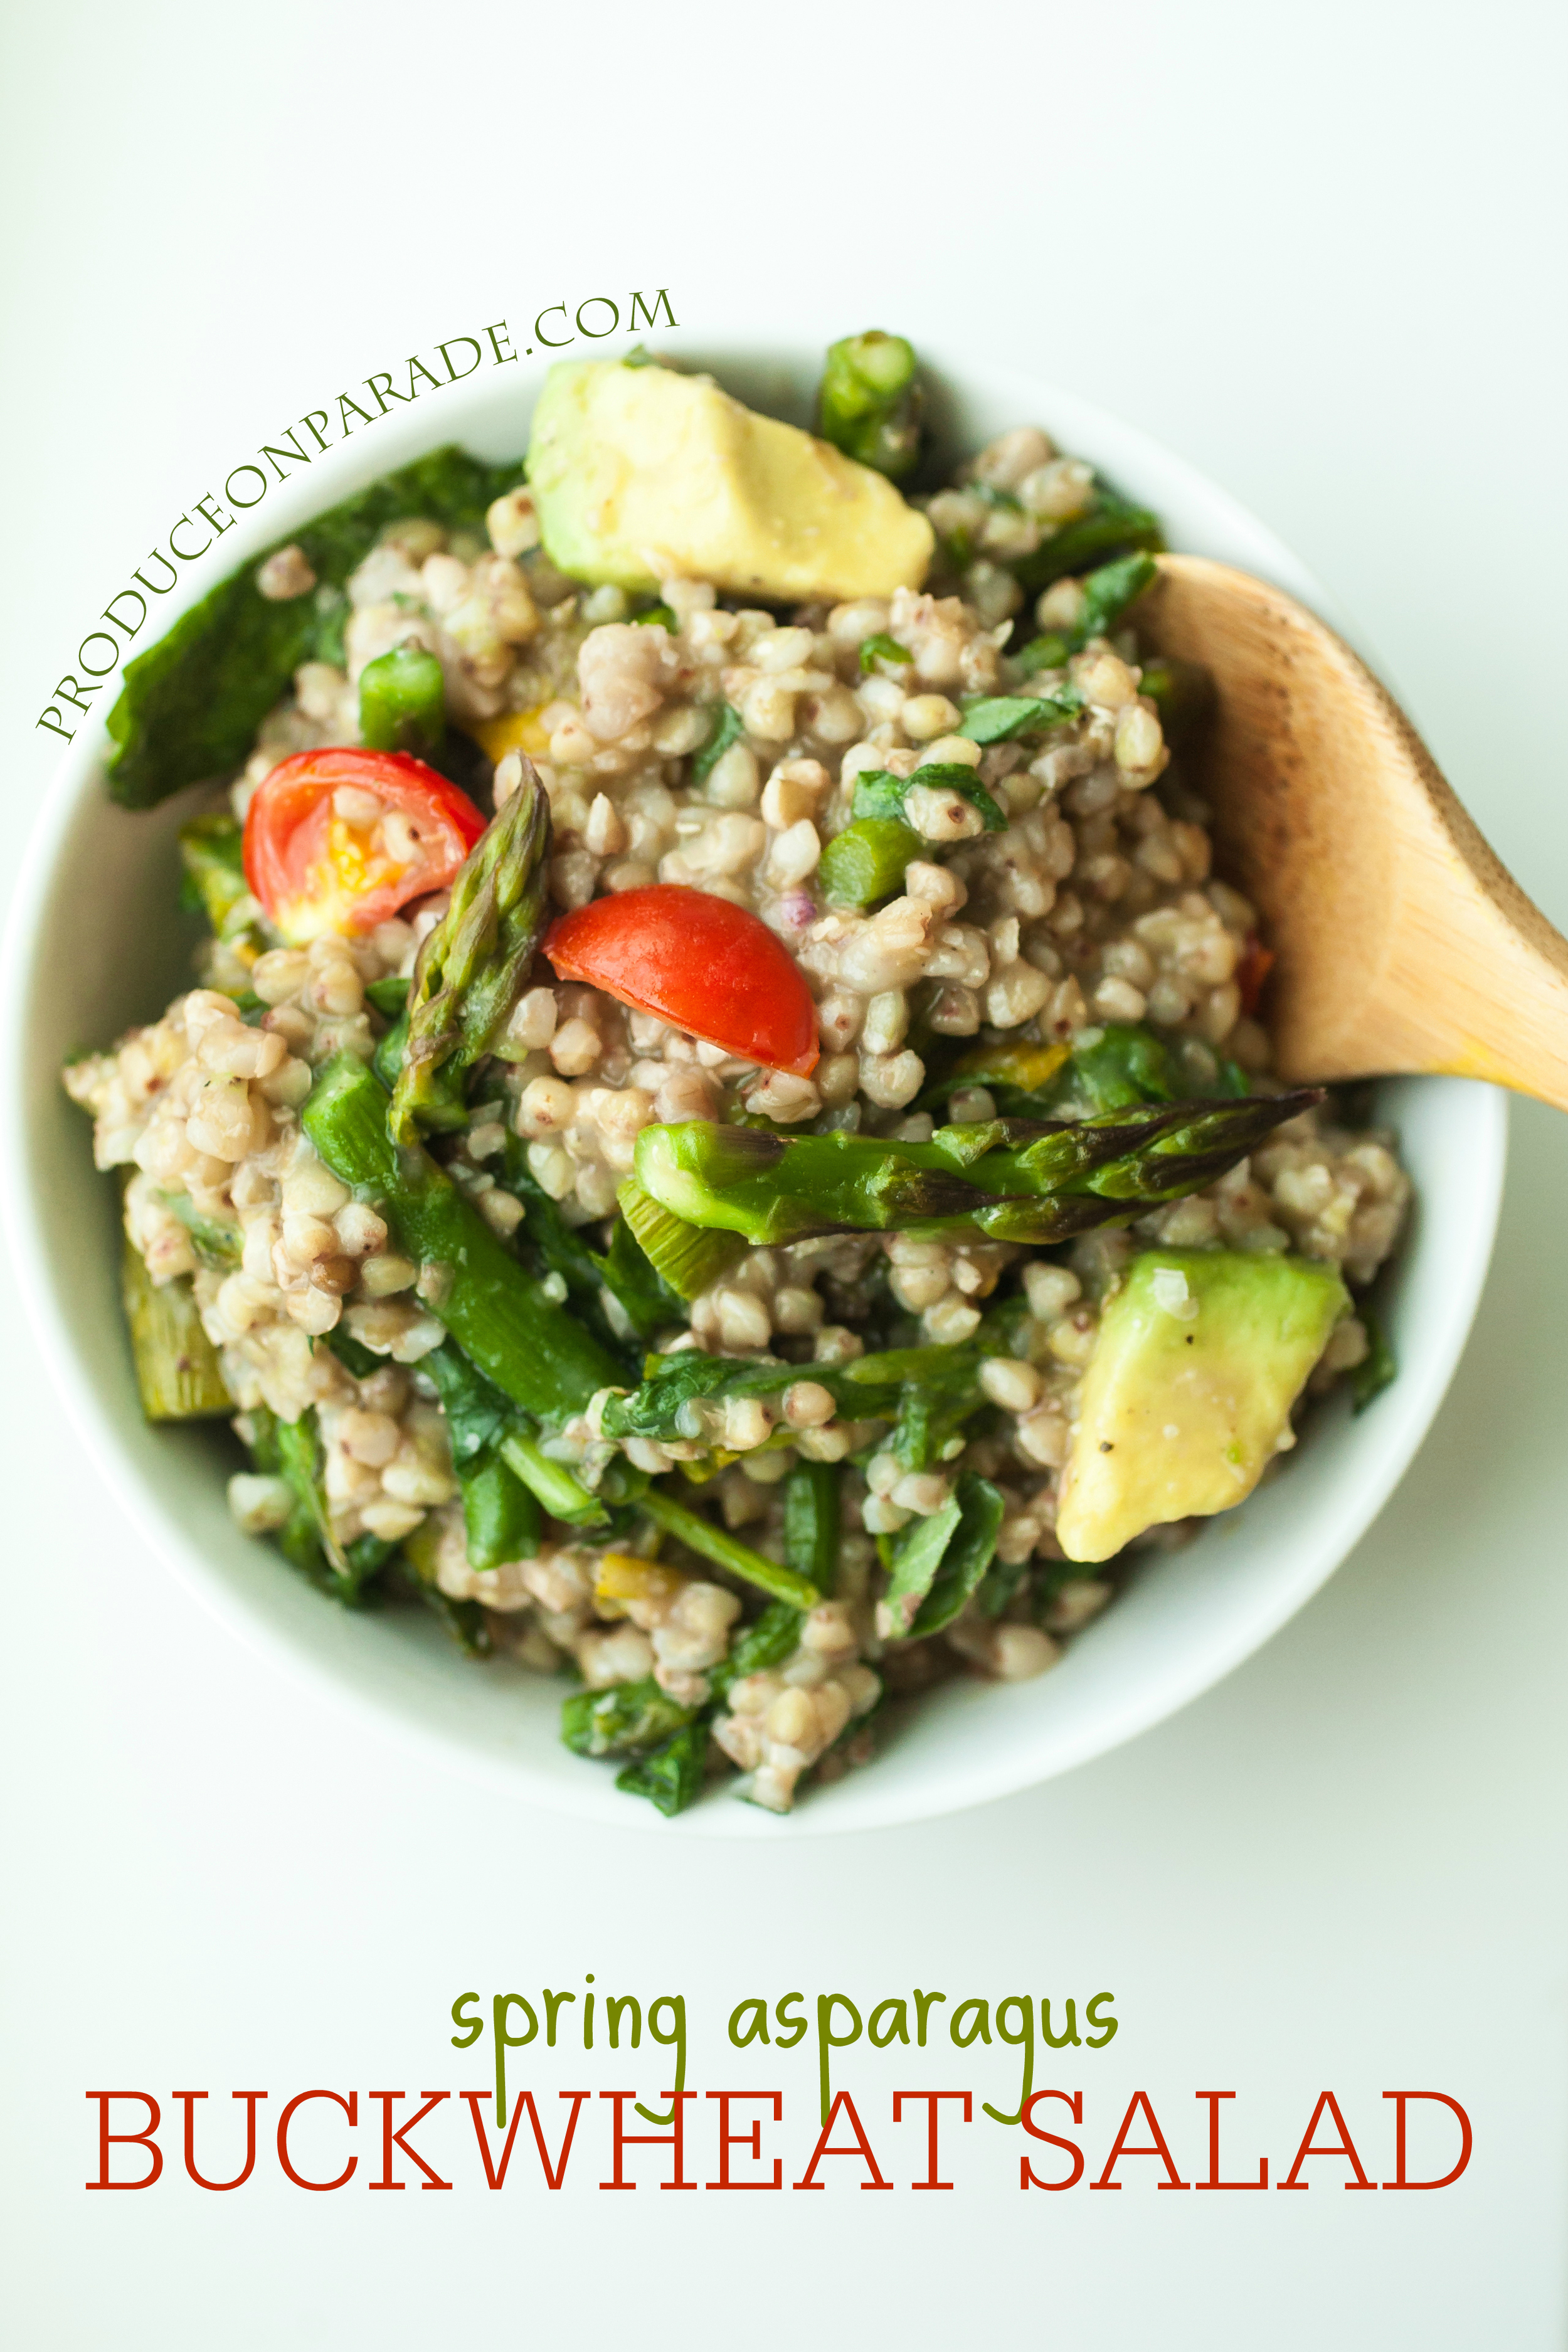 Produce On Parade - Spring Asparagus Buckwheat Salad - Buckwheat groats are a neat alternative to cous cous, quinoa, millet, or rice. They're most often associated with breakfast but make a wholesome, hearty salad as well! This salad lends an easy, springtime feeling; crisp asparagus, roasted arugula, sweet cherry tomatoes, and creamy avocado bath in a basil-lemon dressing.